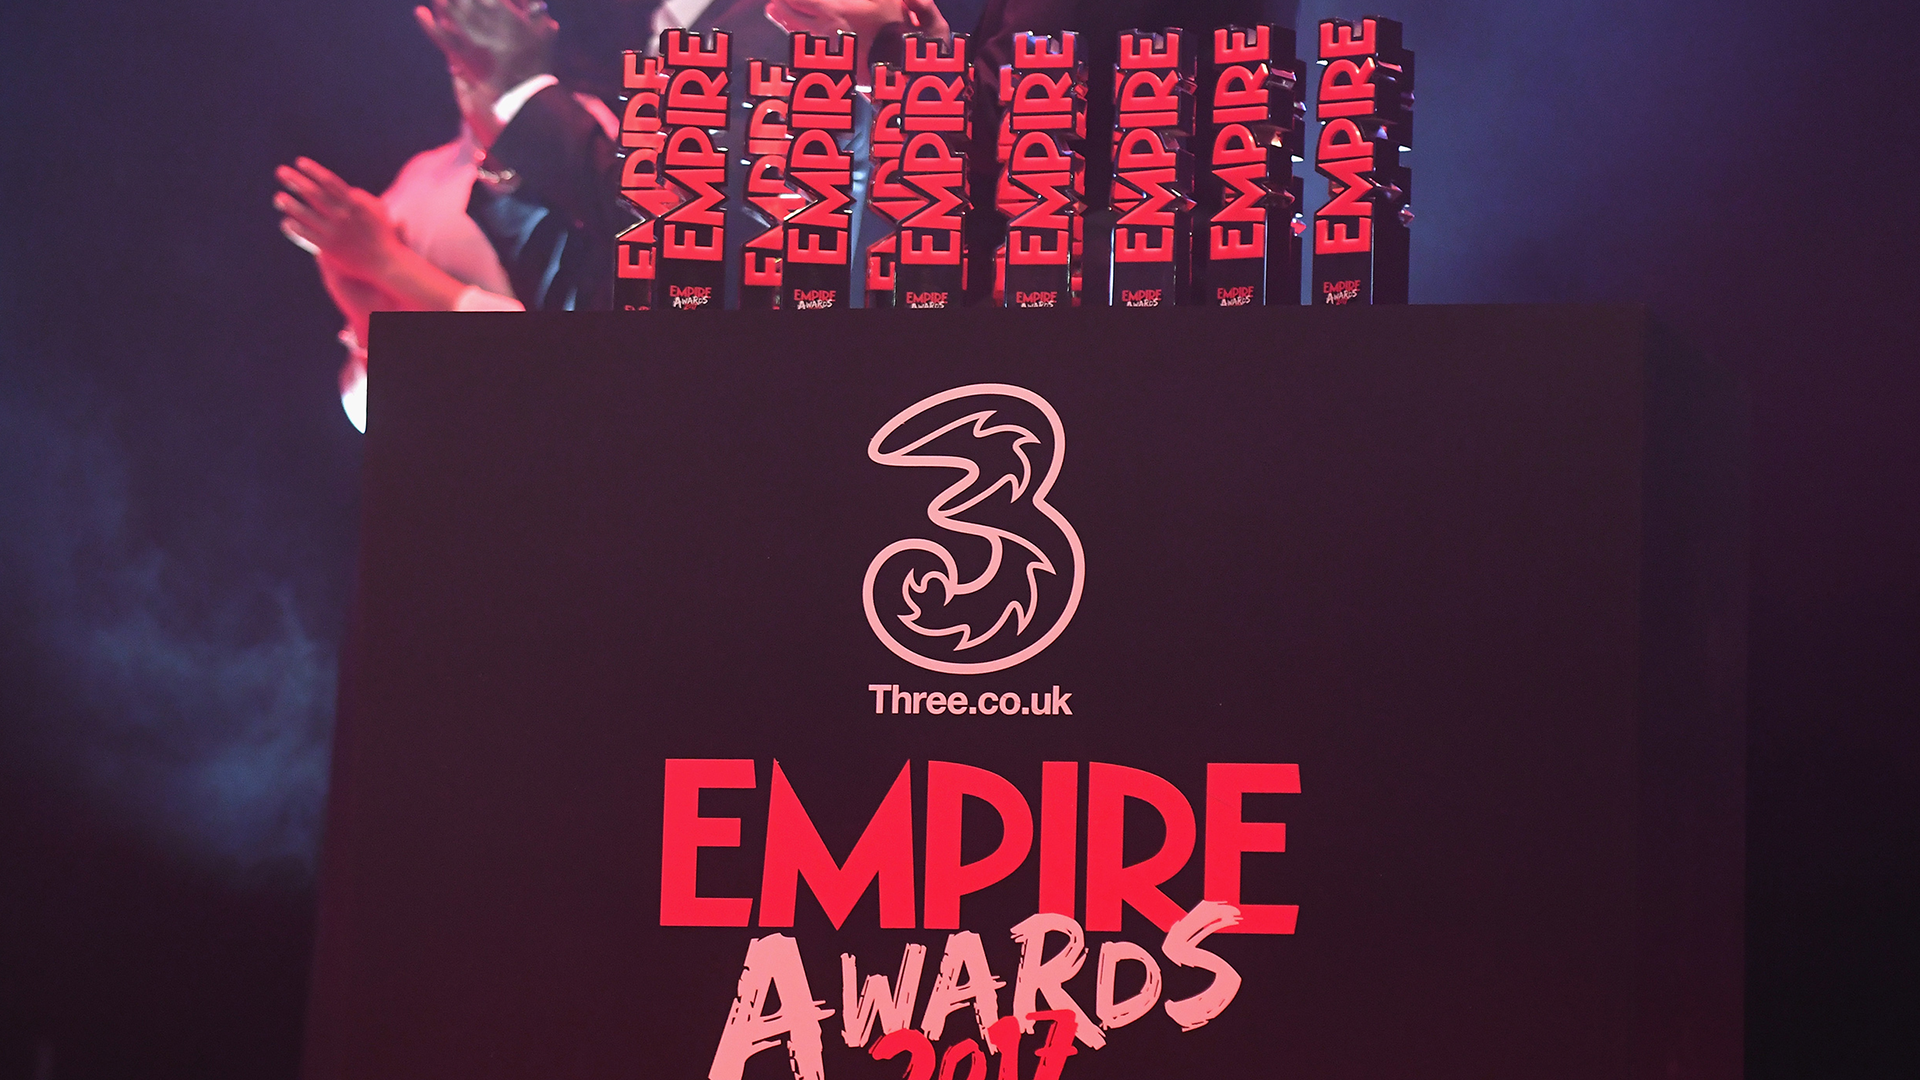 The Empire Awards